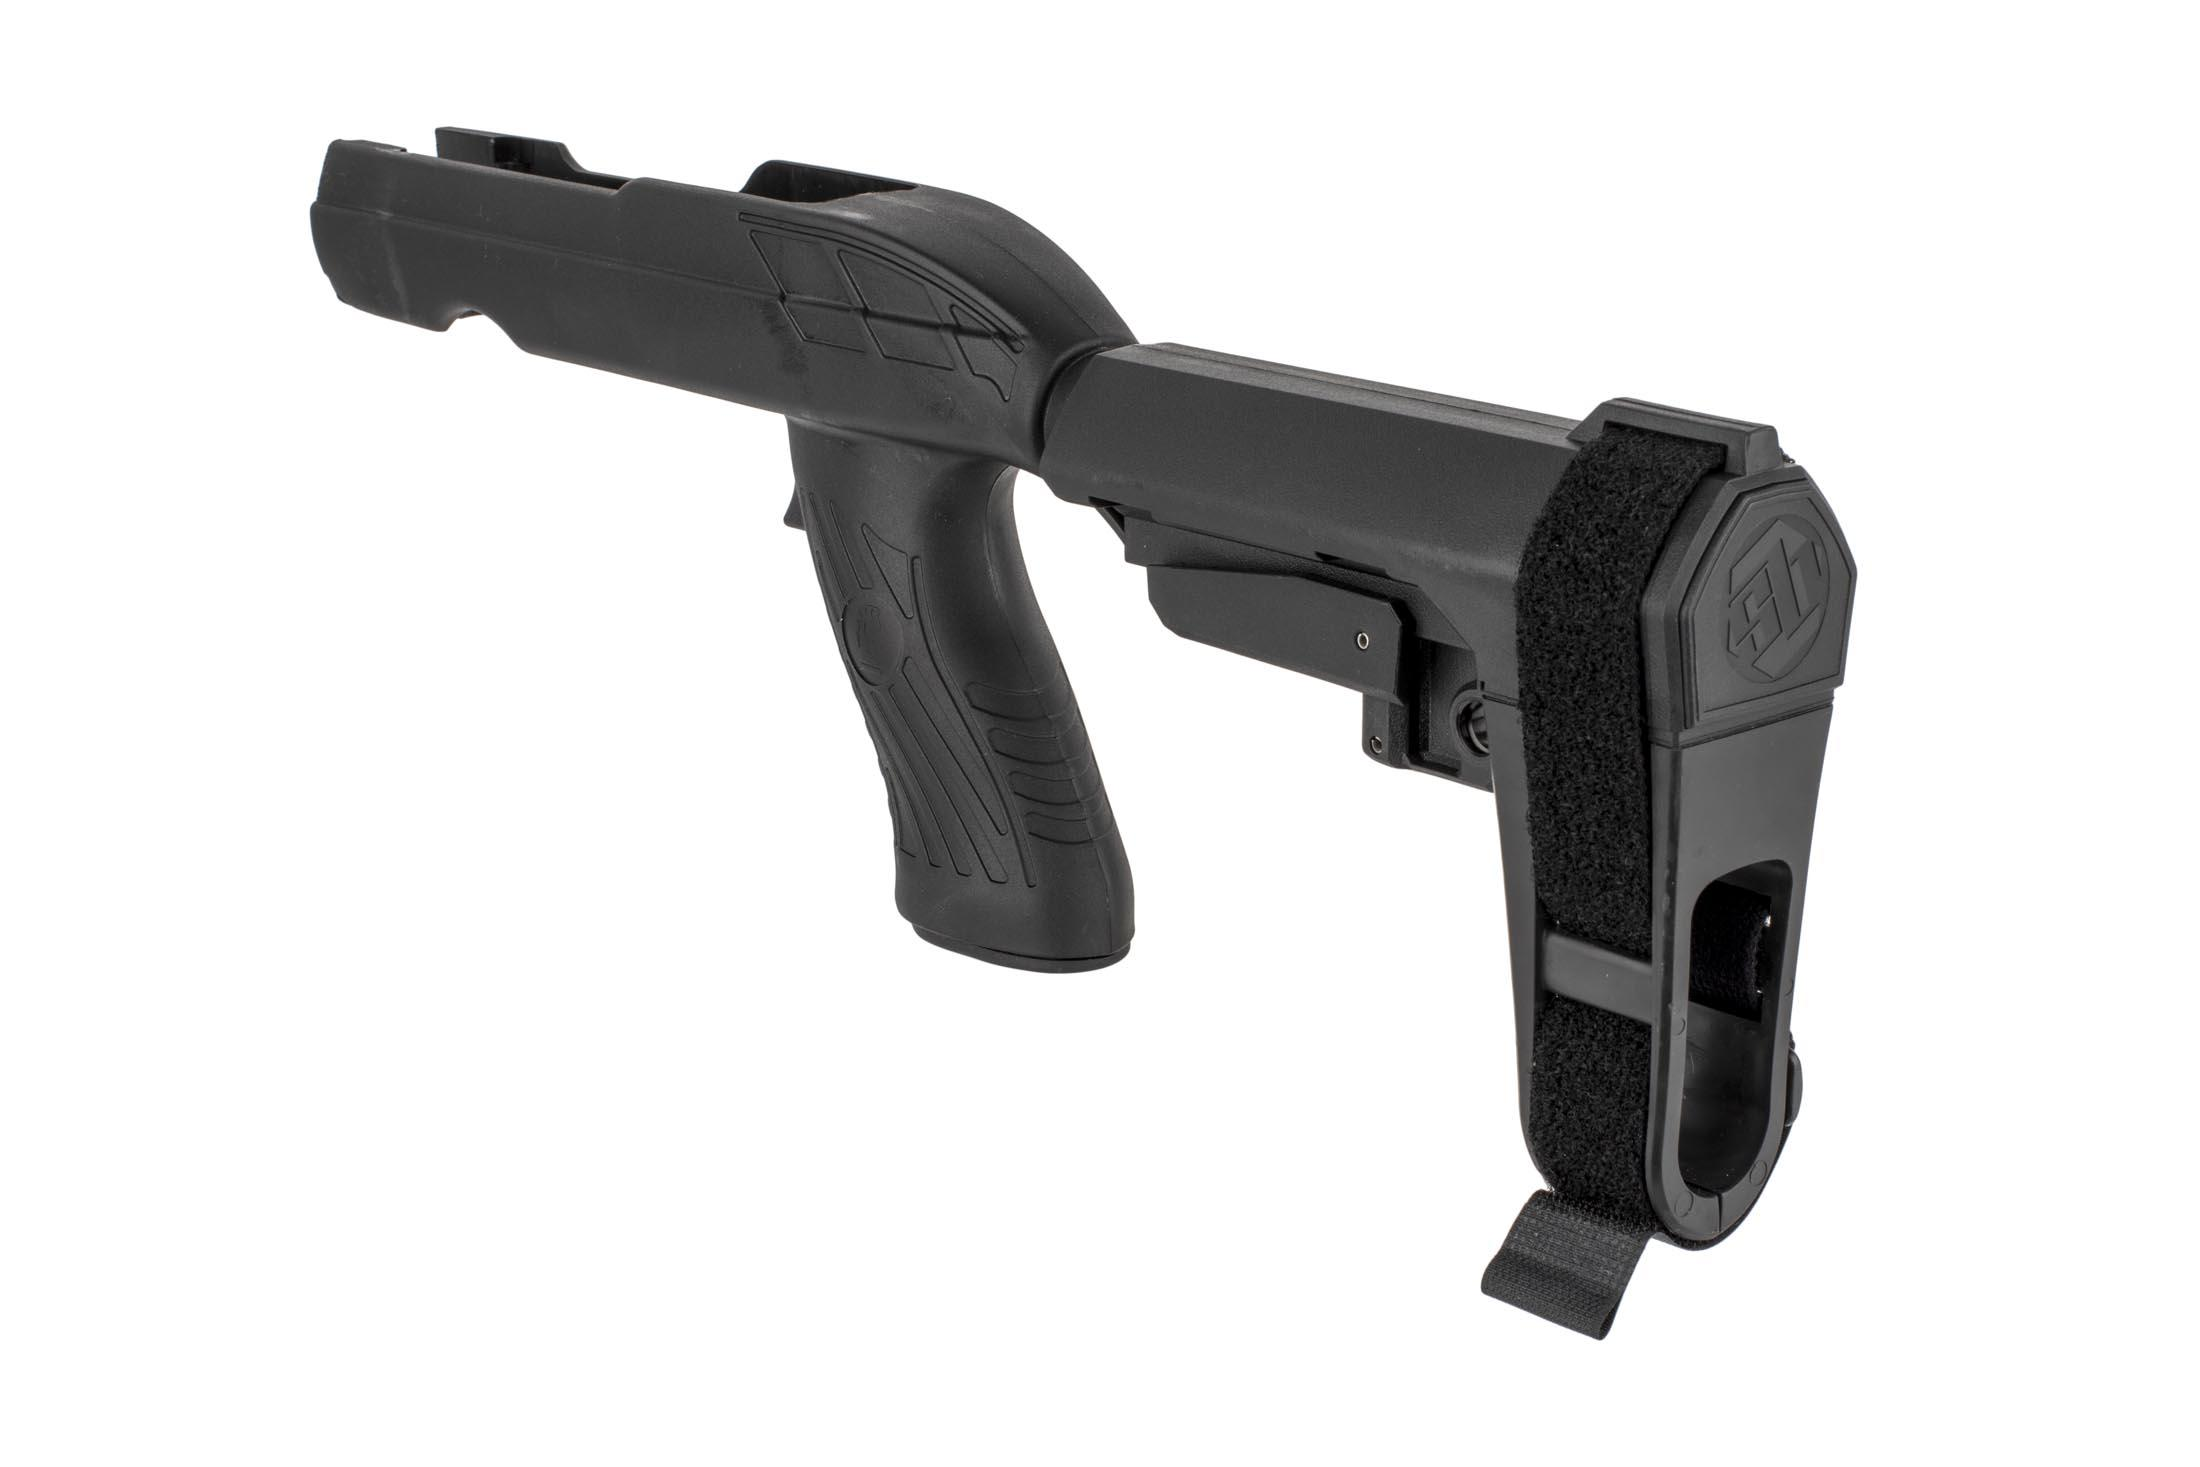 The SB Tactical Charger Takedown 1022 pistol brace kit is highly versatile and easy to use